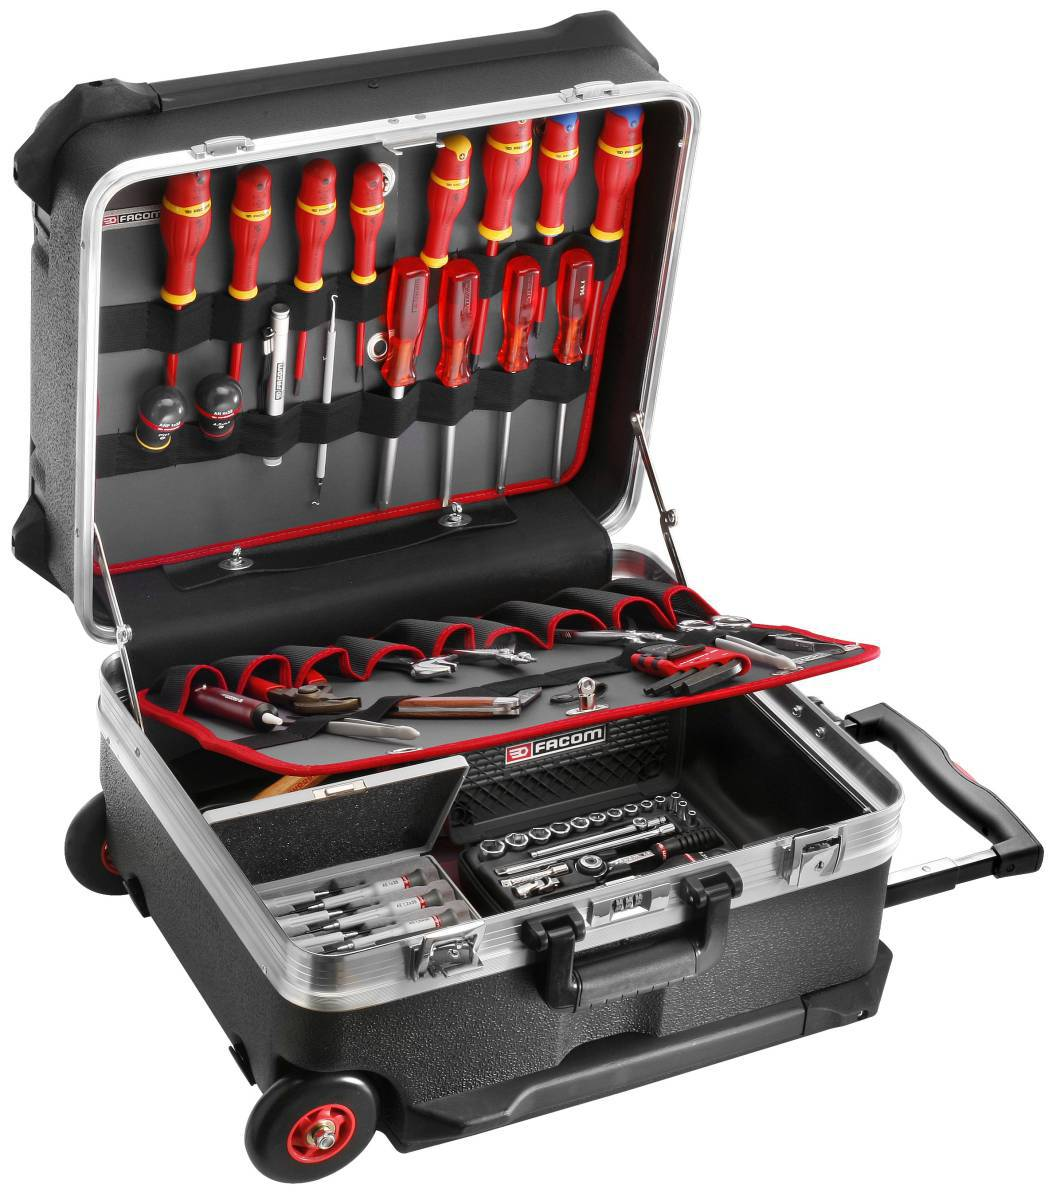 facom electricians technicians tool set kit in trolley case 2061 em41a ebay. Black Bedroom Furniture Sets. Home Design Ideas